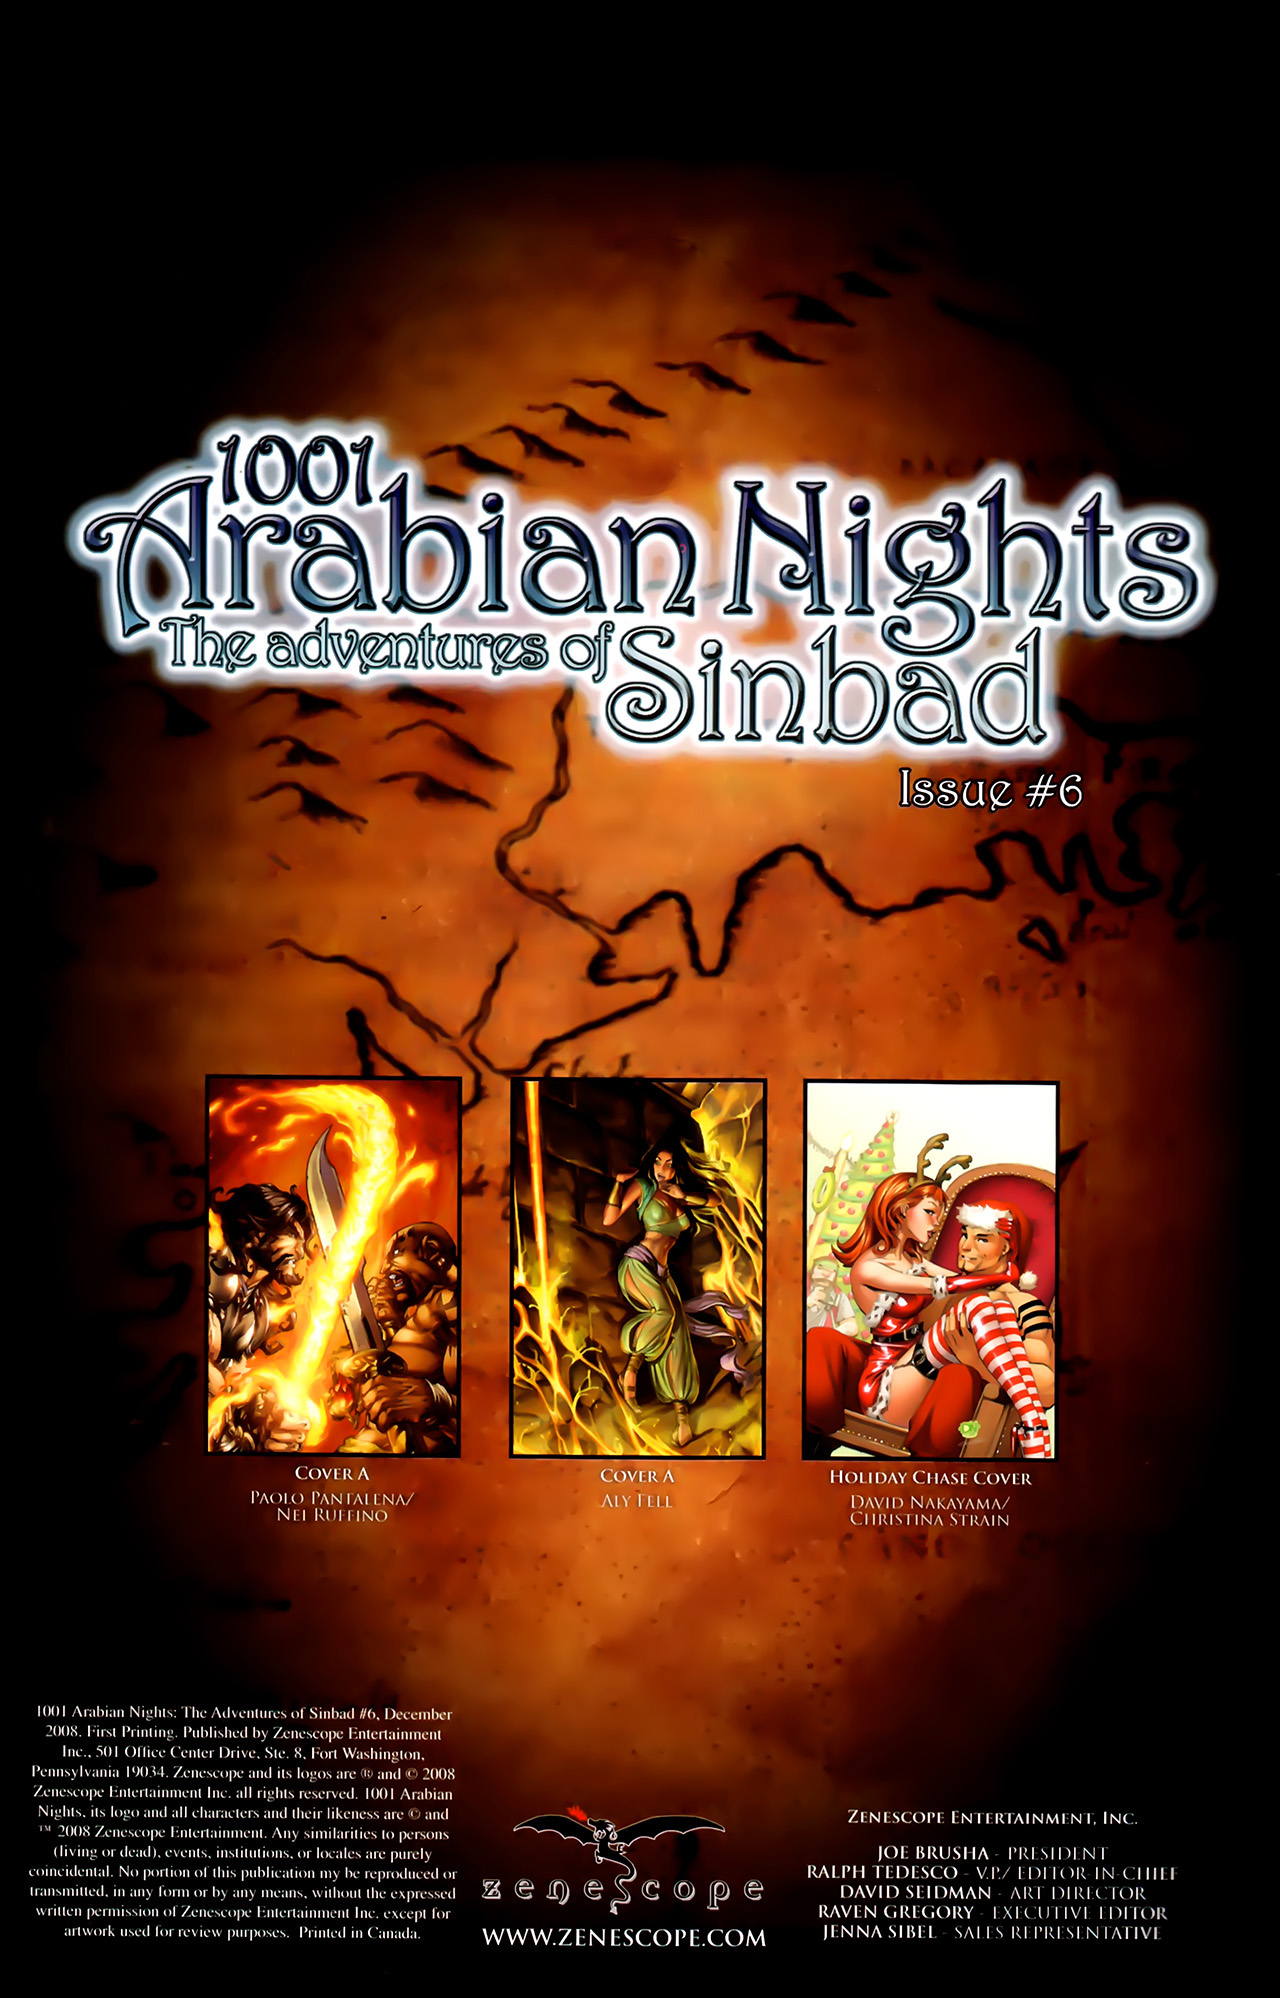 Read online 1001 Arabian Nights: The Adventures of Sinbad comic -  Issue #6 - 4